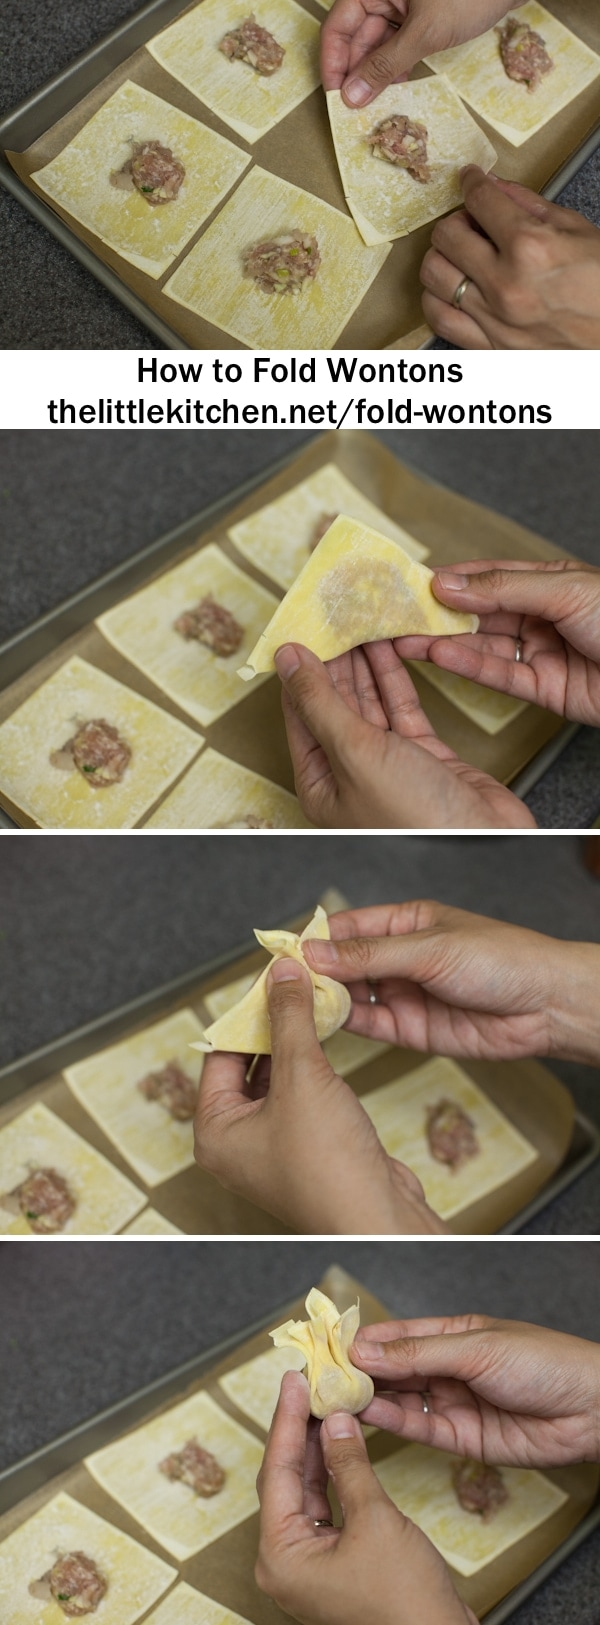 How to Fold Wontons thelittlekitchen.net